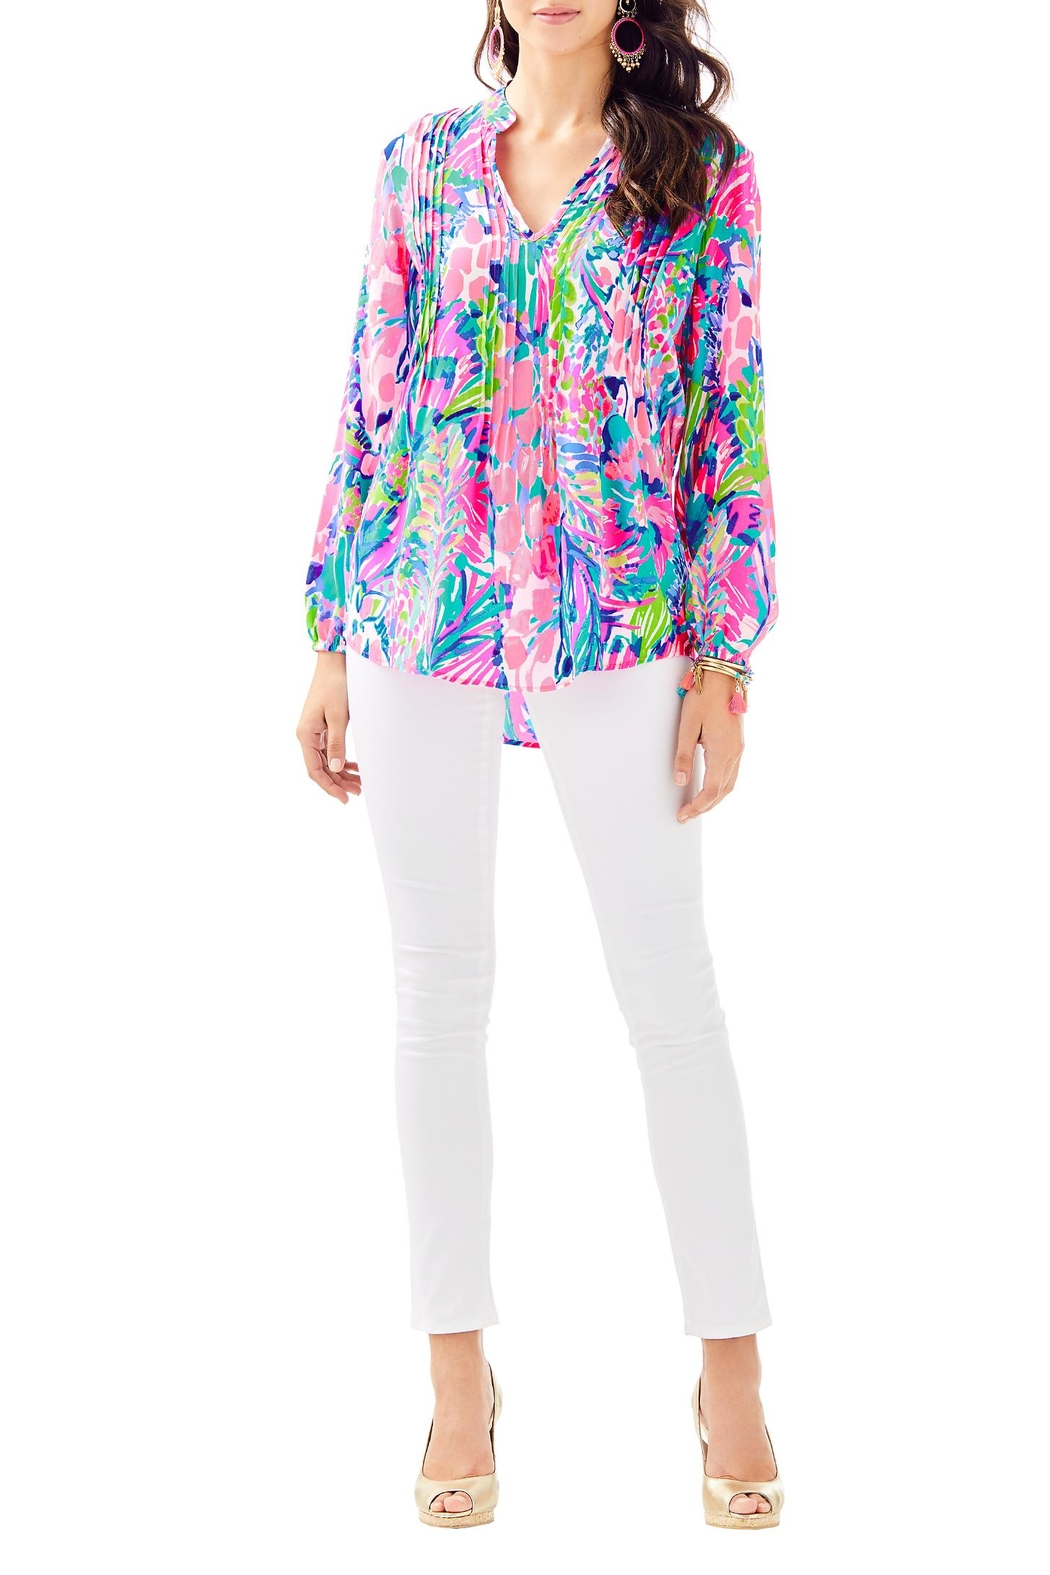 Lilly Pulitzer Sarasota Tunic Top - Side Cropped Image